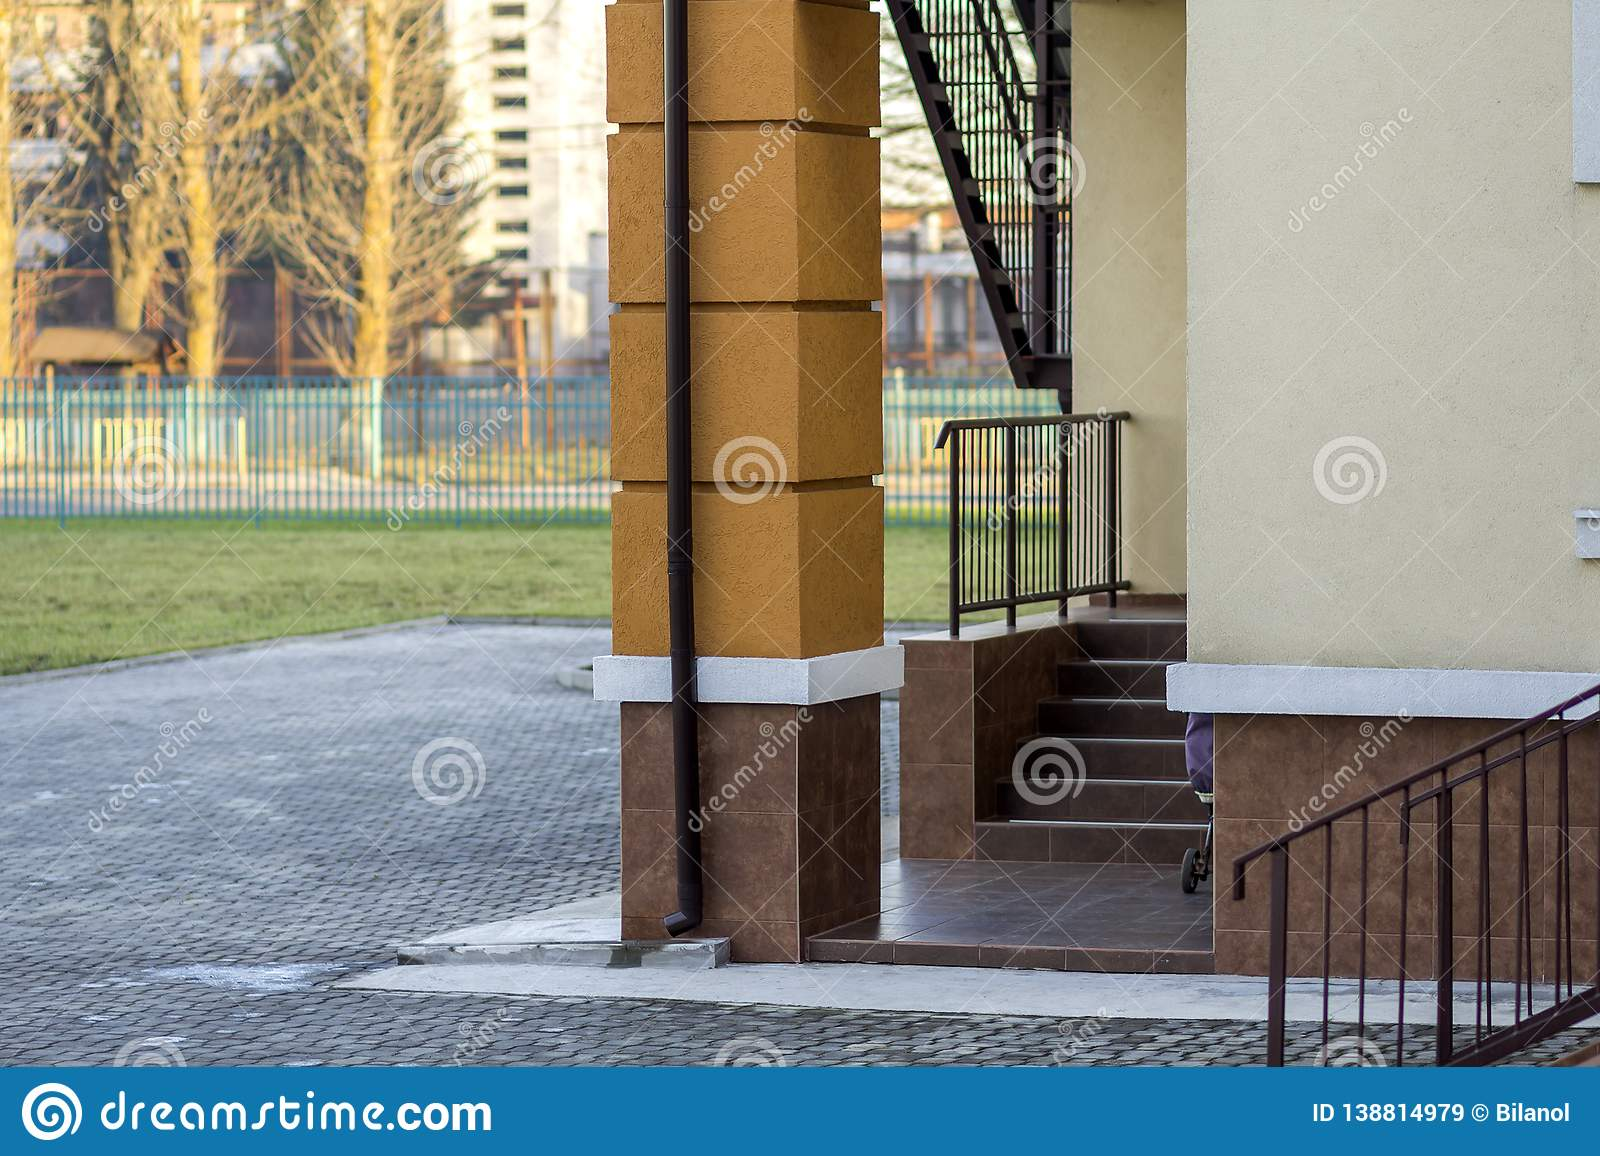 Detail of new kindergarten or school building corner with supporting column, staircase, metal fence and handrails on sunny